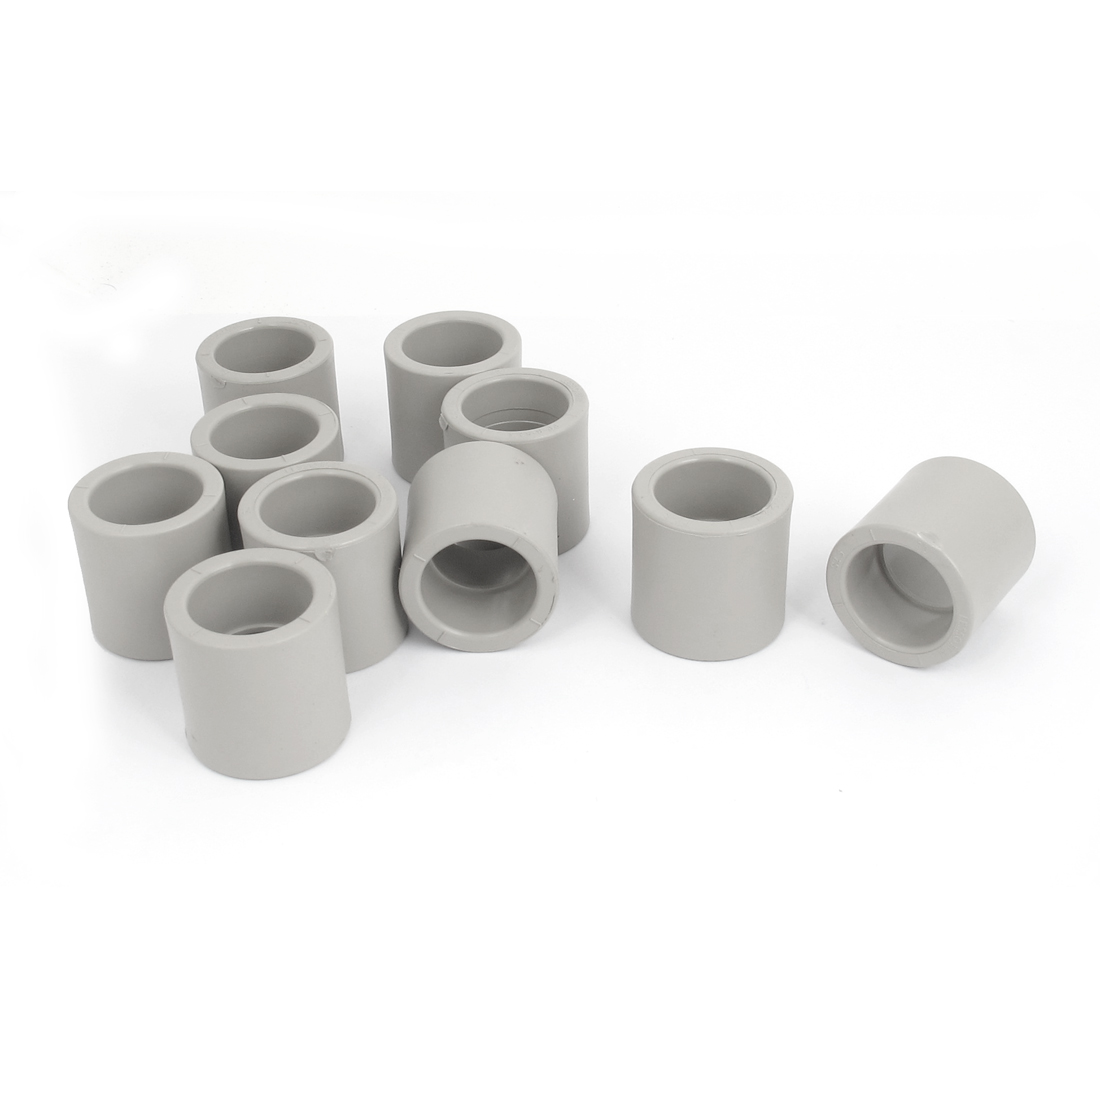 Straight PPR Pipe Connectors Fittings Gray 32mm Inner Diameter 10 Pcs